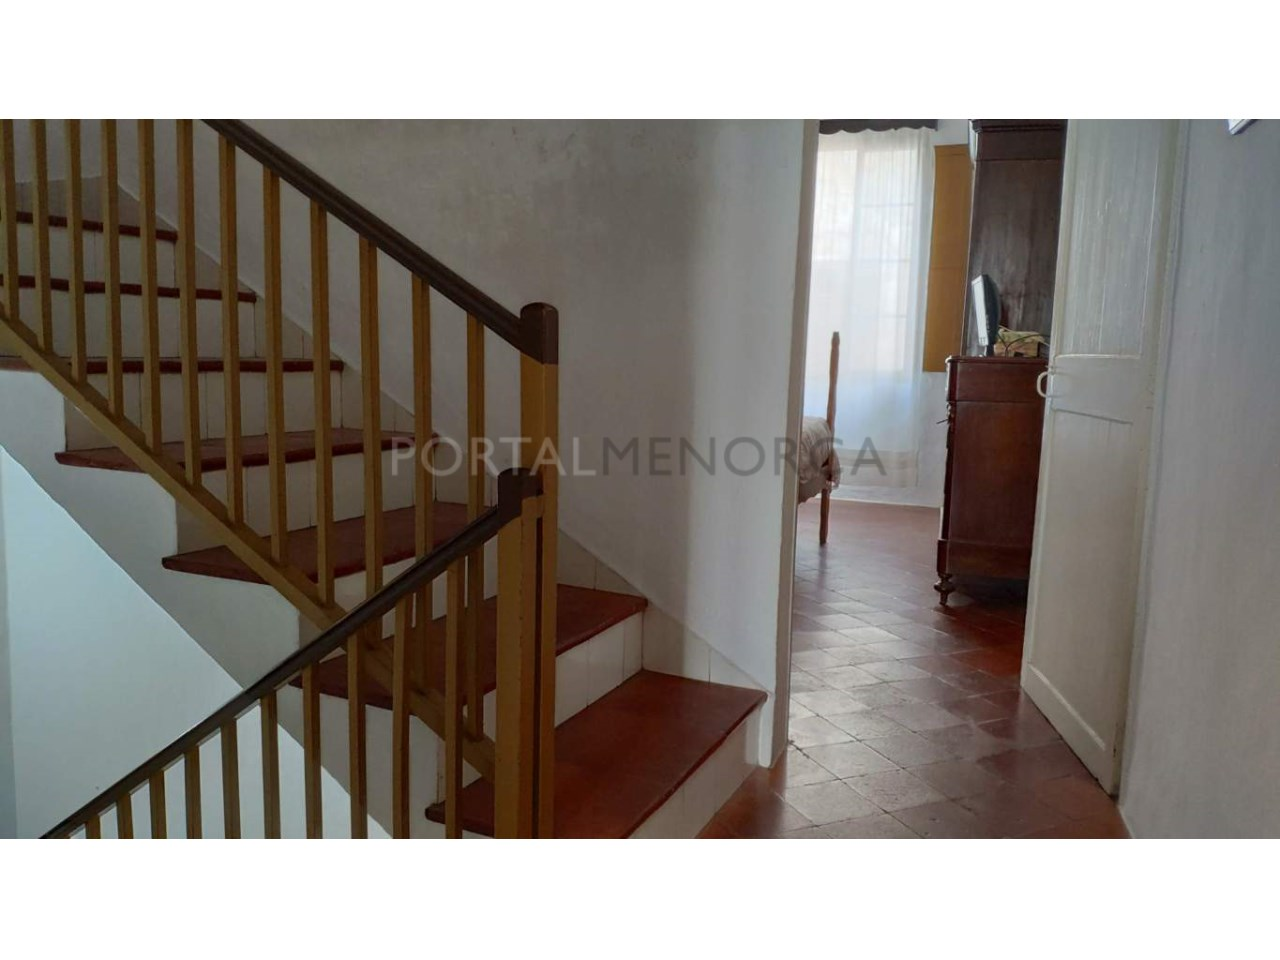 House for sale in the old town of Ciutadella-Stairs